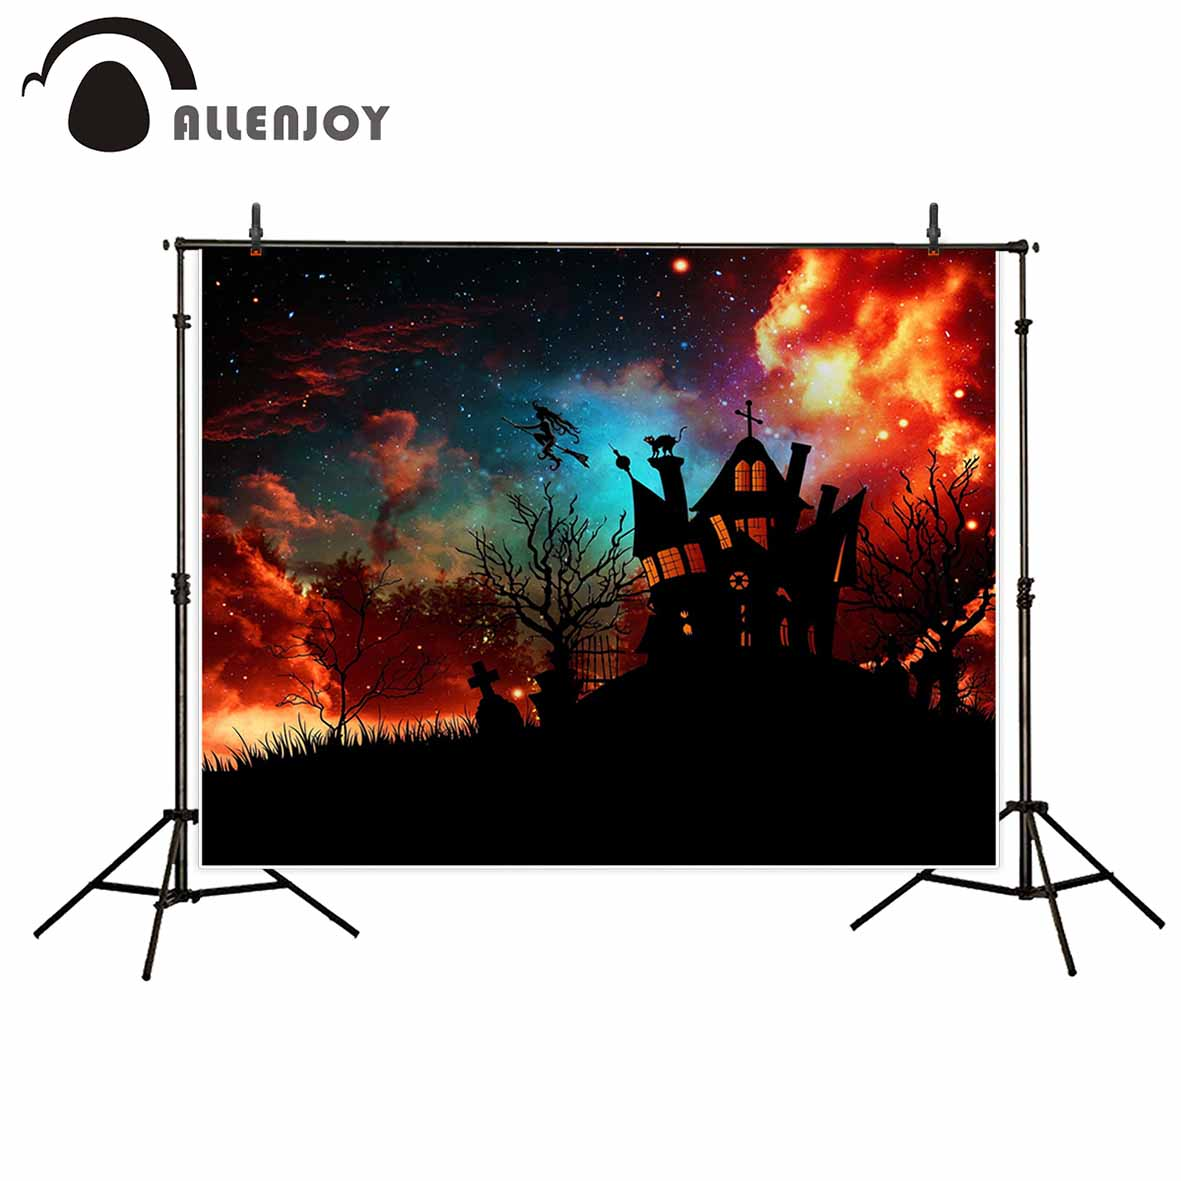 Allenjoy photography backdrop Red cloud Cemetery Witch castle professional festival photographic background computer printed